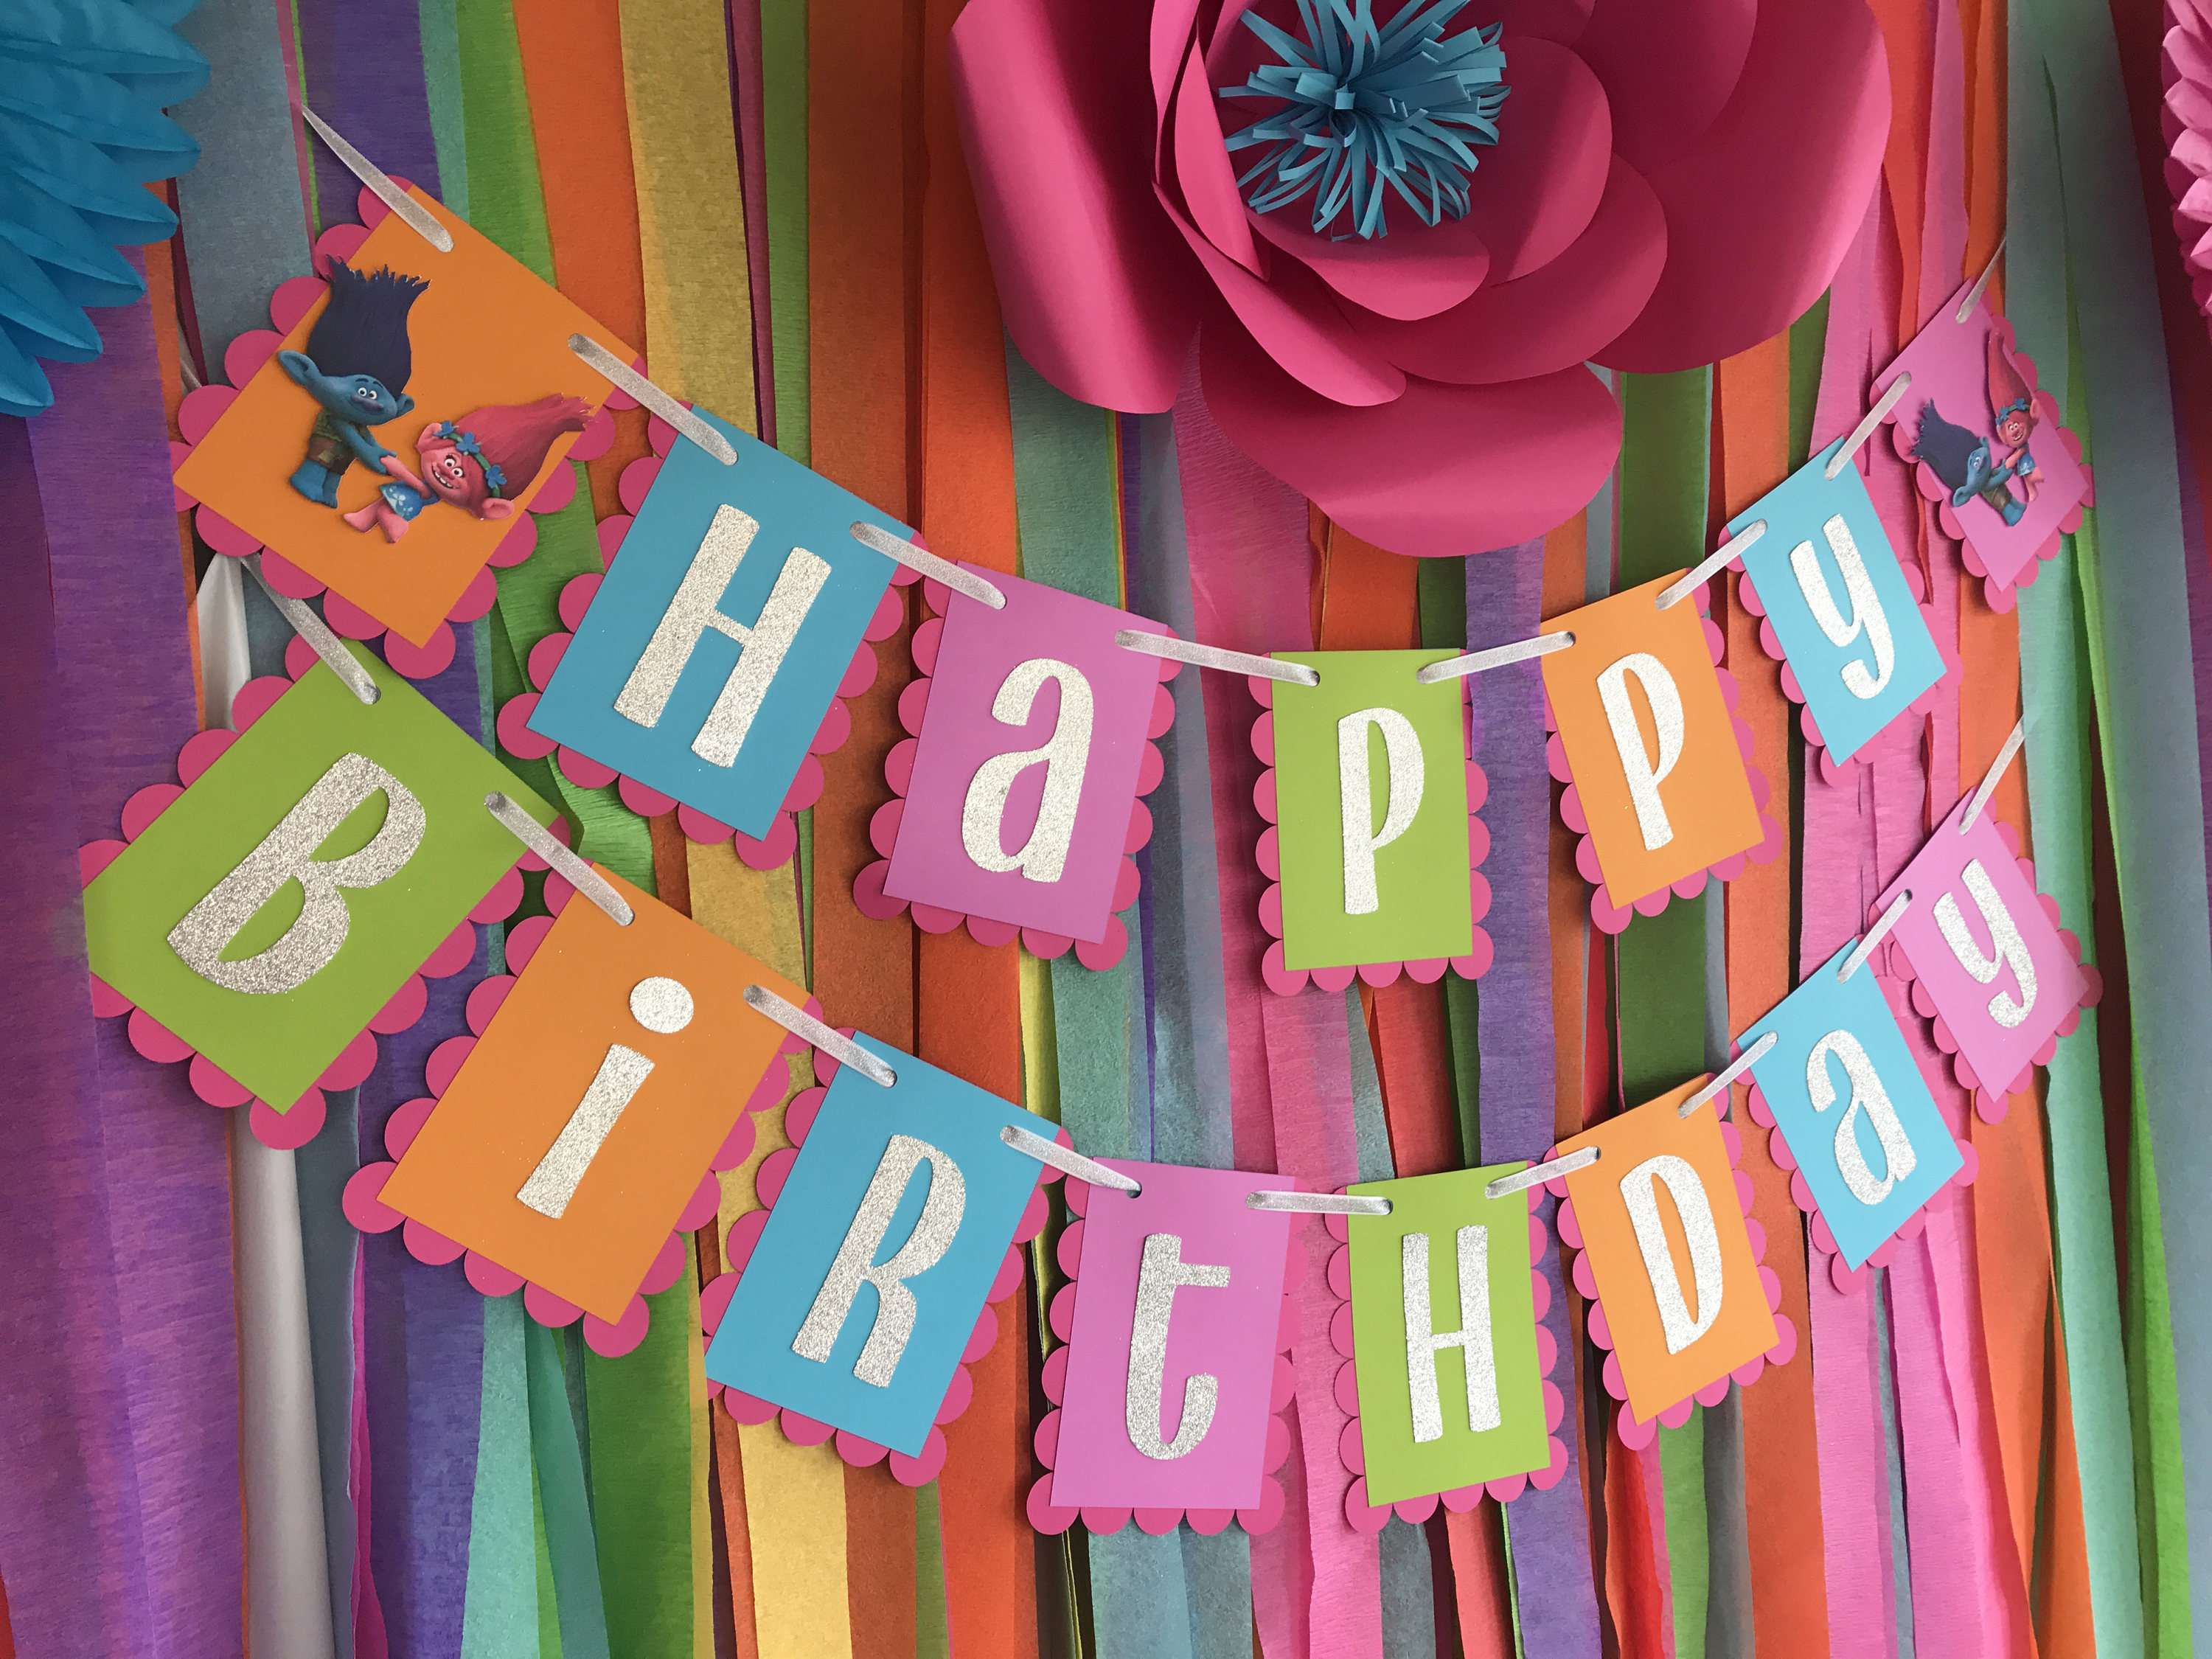 crepe paper design for birthday ; the-best-trolls-birthday-party-ideas-happiness-is-homemade-design-ideas-of-birthday-party-ideas-for-8-year-old-boy-of-birthday-party-ideas-for-8-year-old-boy